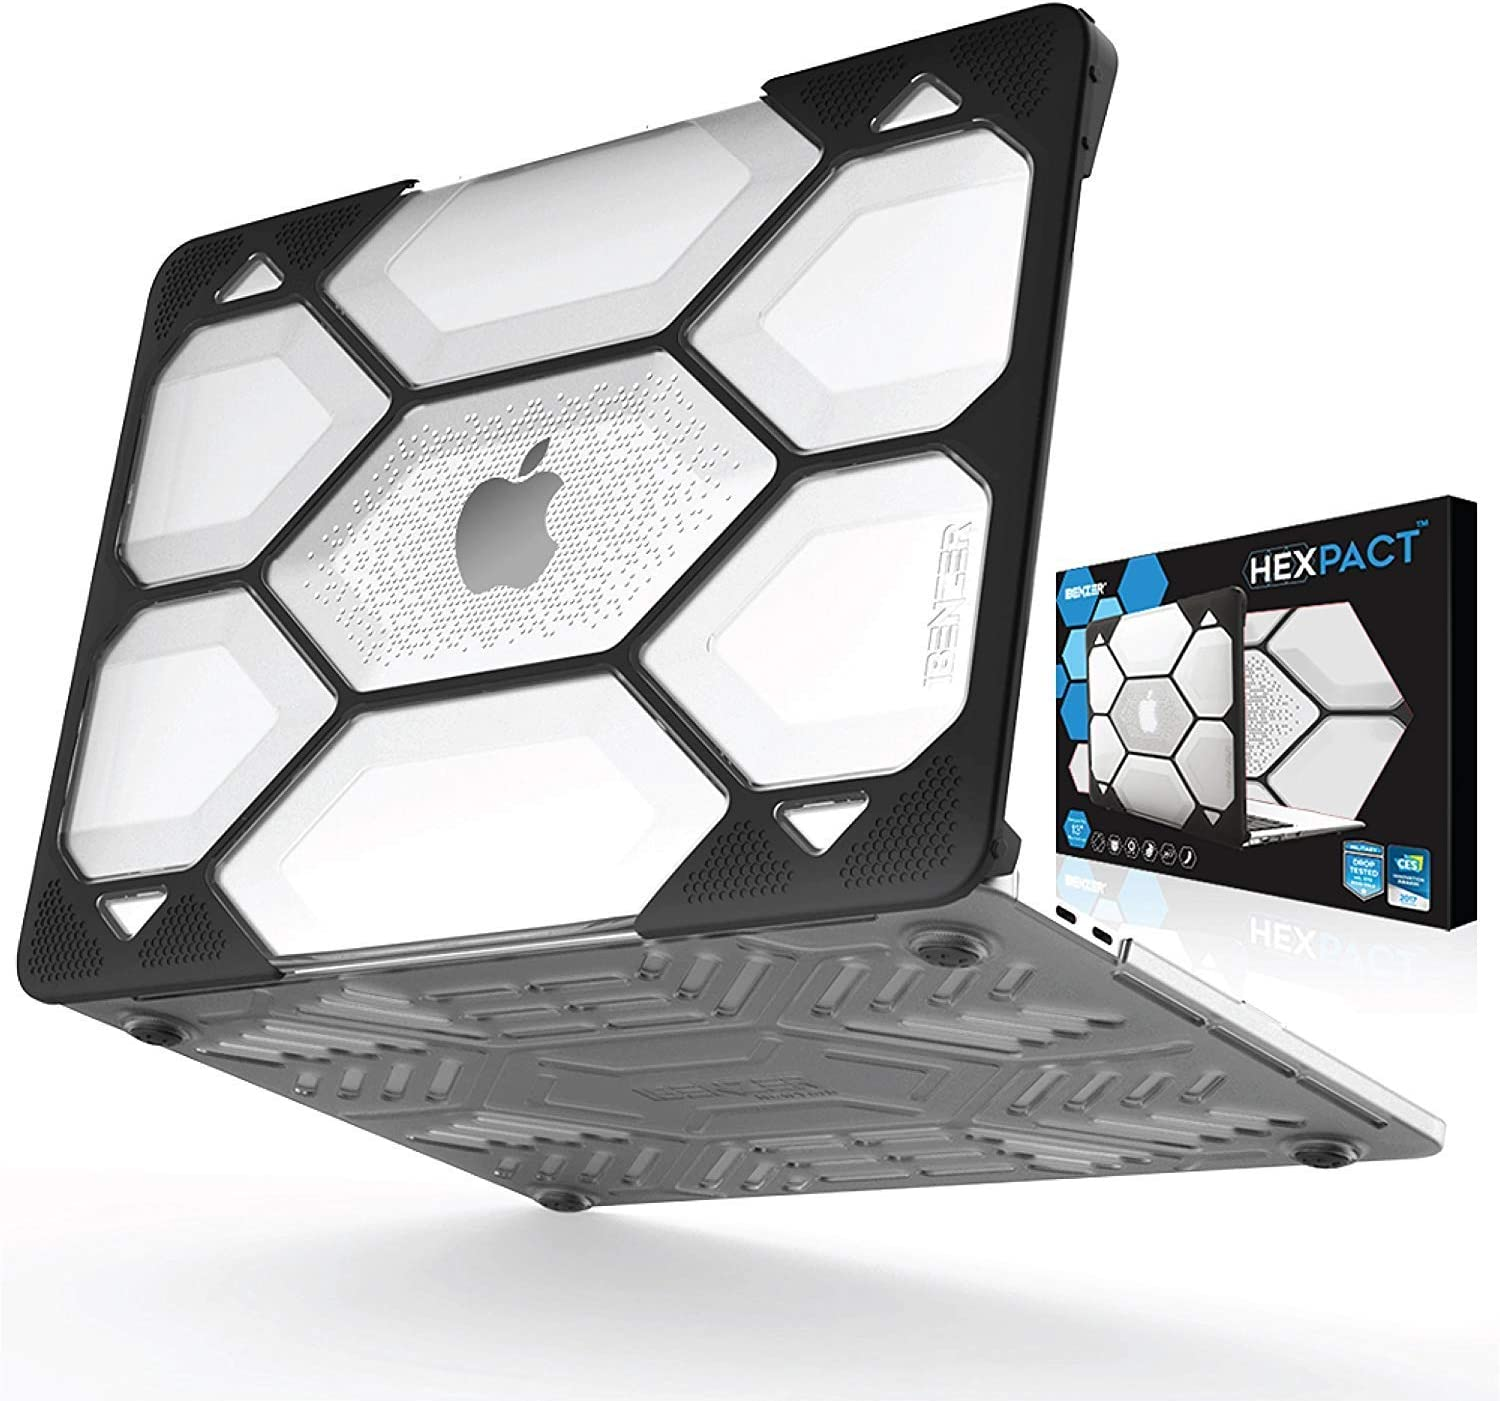 IBENZER Hexpact MacBook Pro 13 Inch Case 2015 2014 2013 2012 A1502 A1425, Heavy Duty Protective Hard Shell Case Cover for Old Version Apple Mac Pro Retina 13, Clear, HR13CYCL